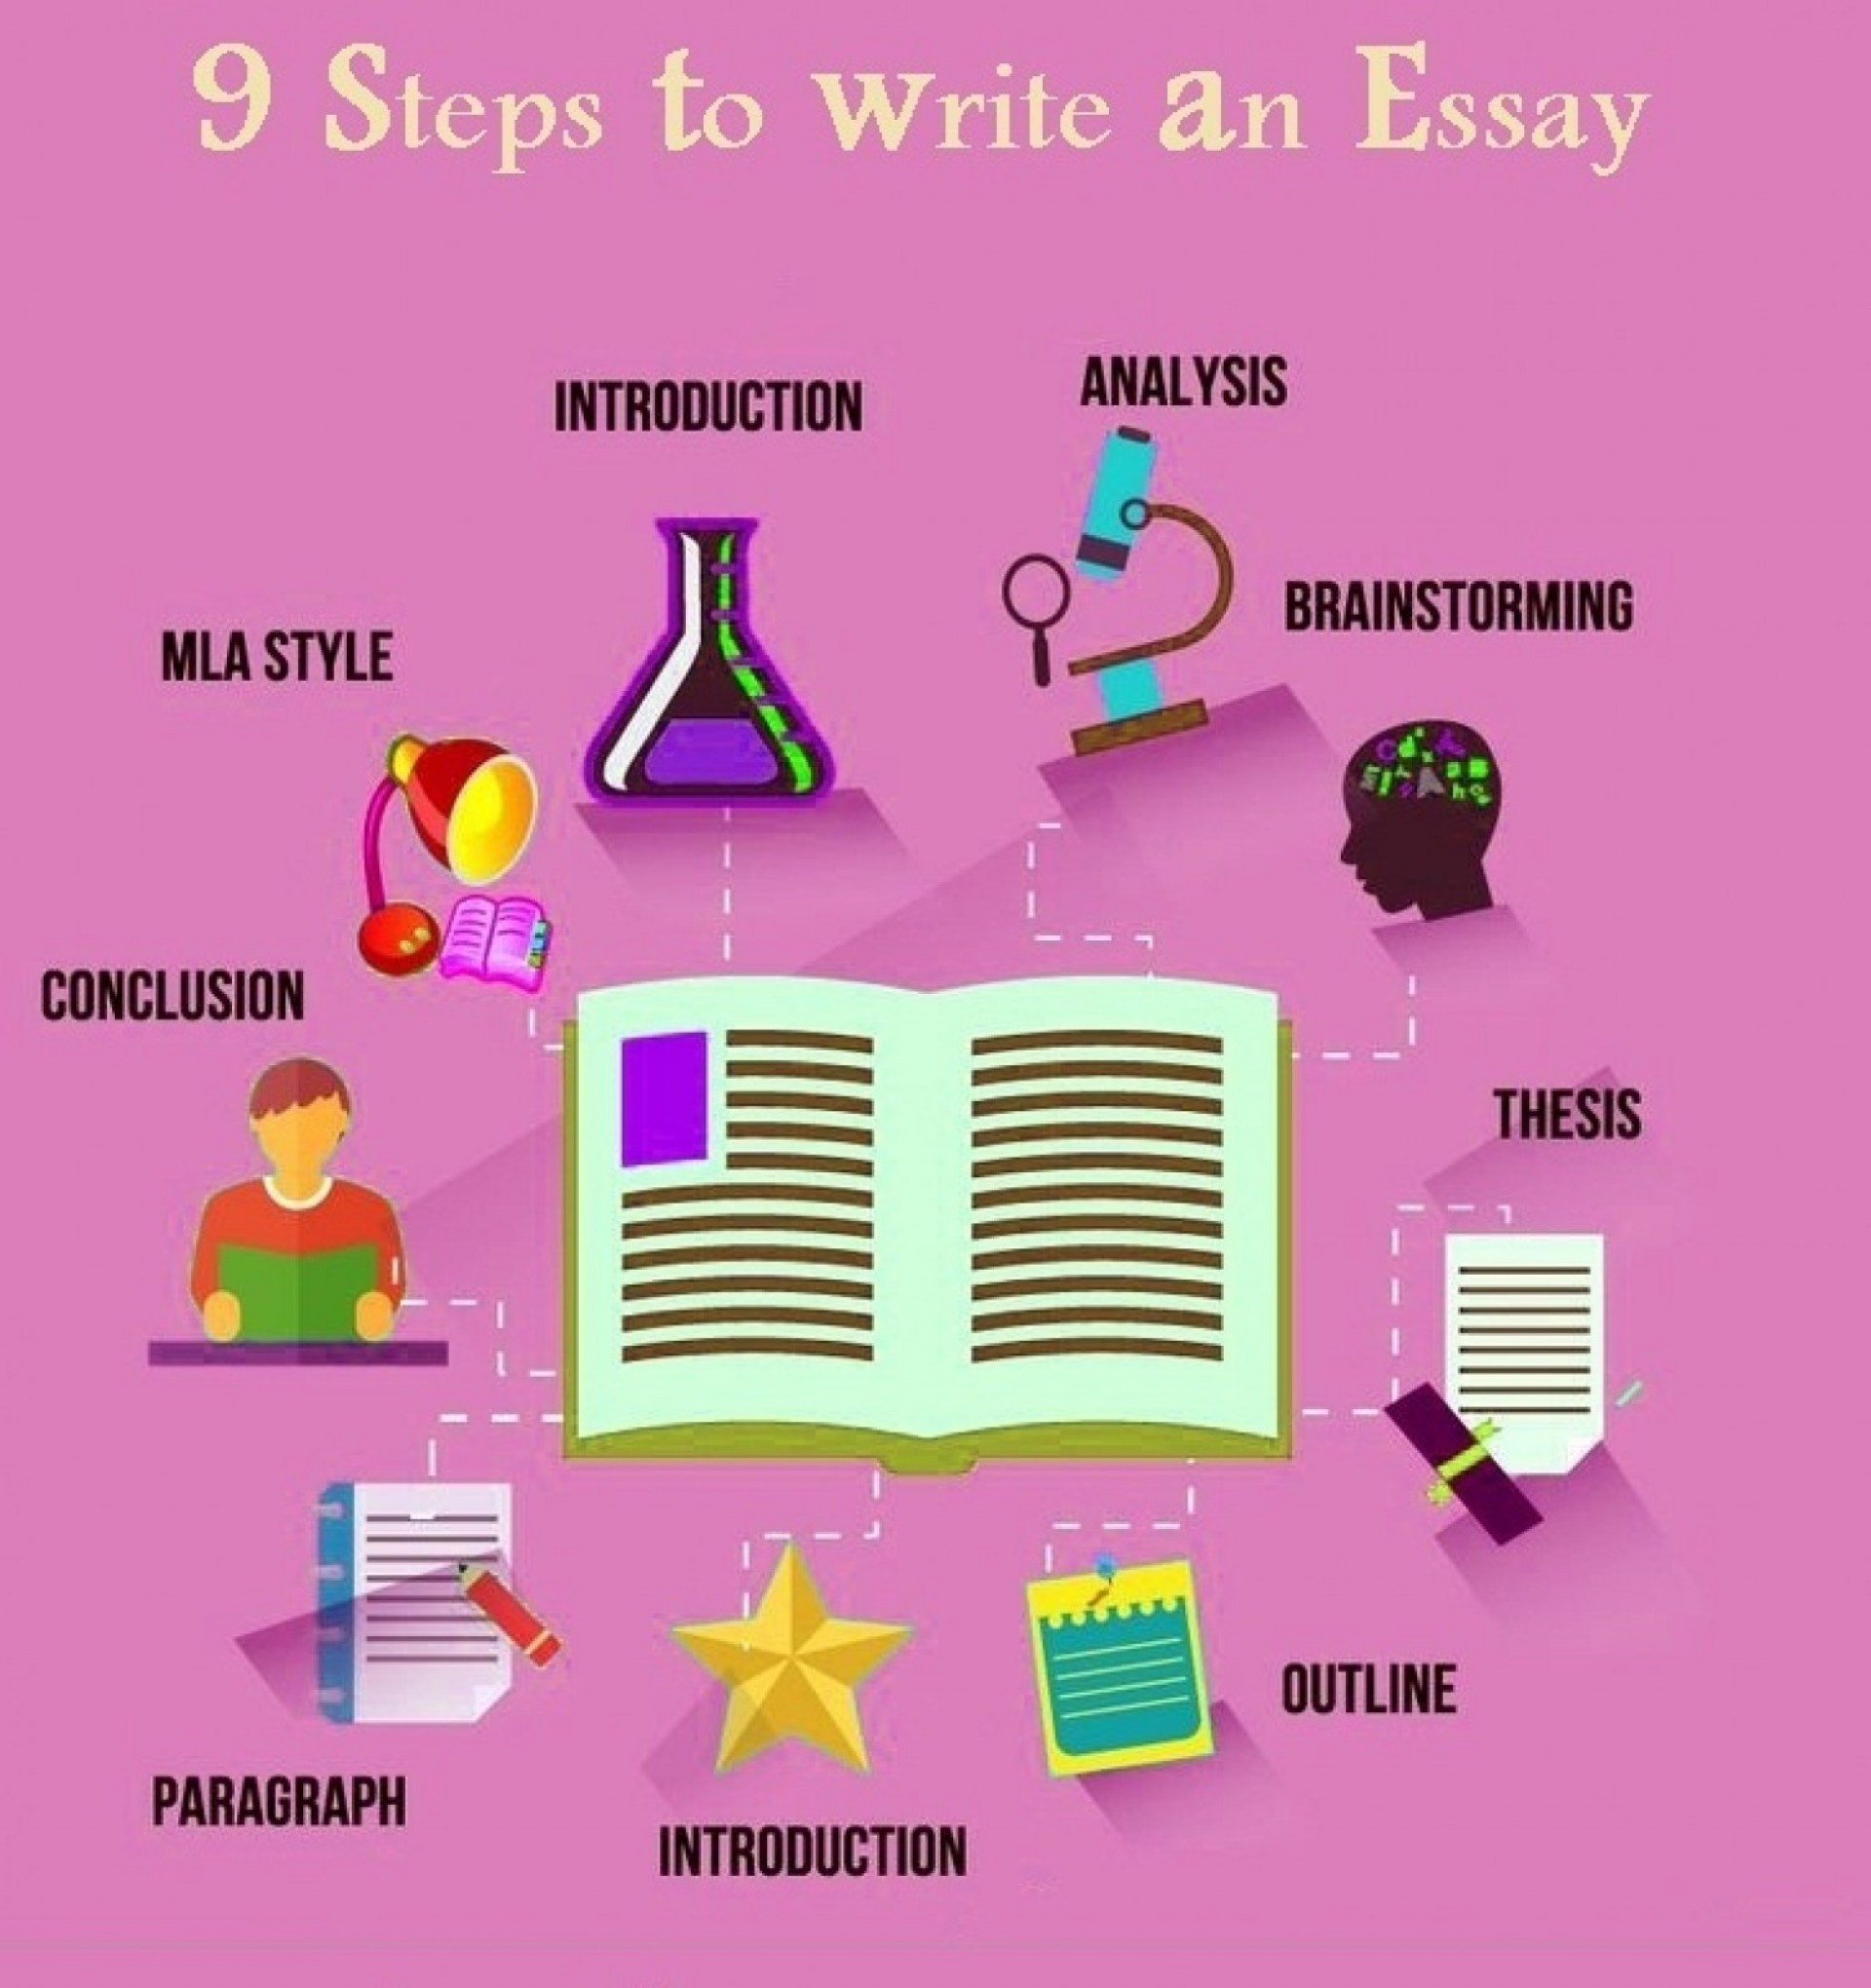 005 Essayxample Steps To Write Good Research Paper Help Kfessayutwk Anssay 54ffdd822be4basy Writing Paragraph Persuasive How In Five Pdf Argumentative Narrative Staggering An Essay Telugu Mla Format 1920